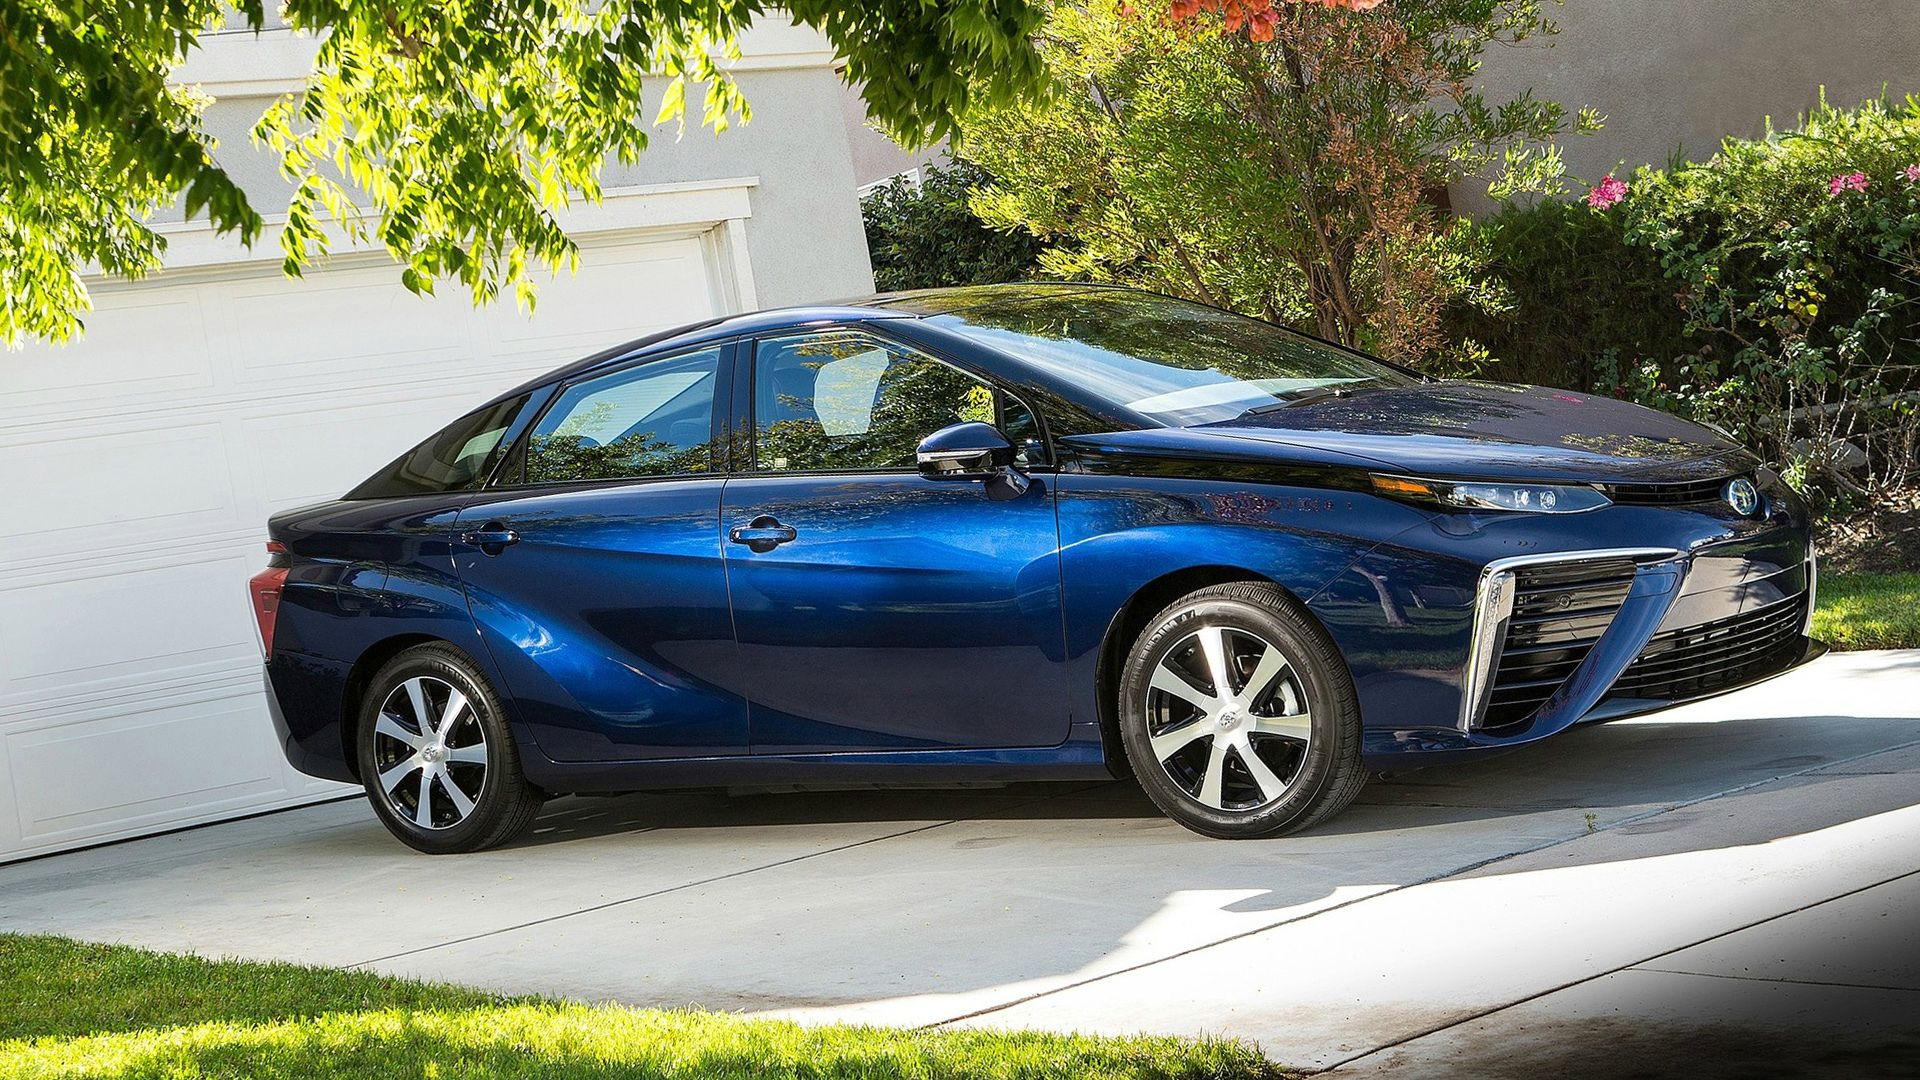 New 2019 Toyota Mirai First Pictures